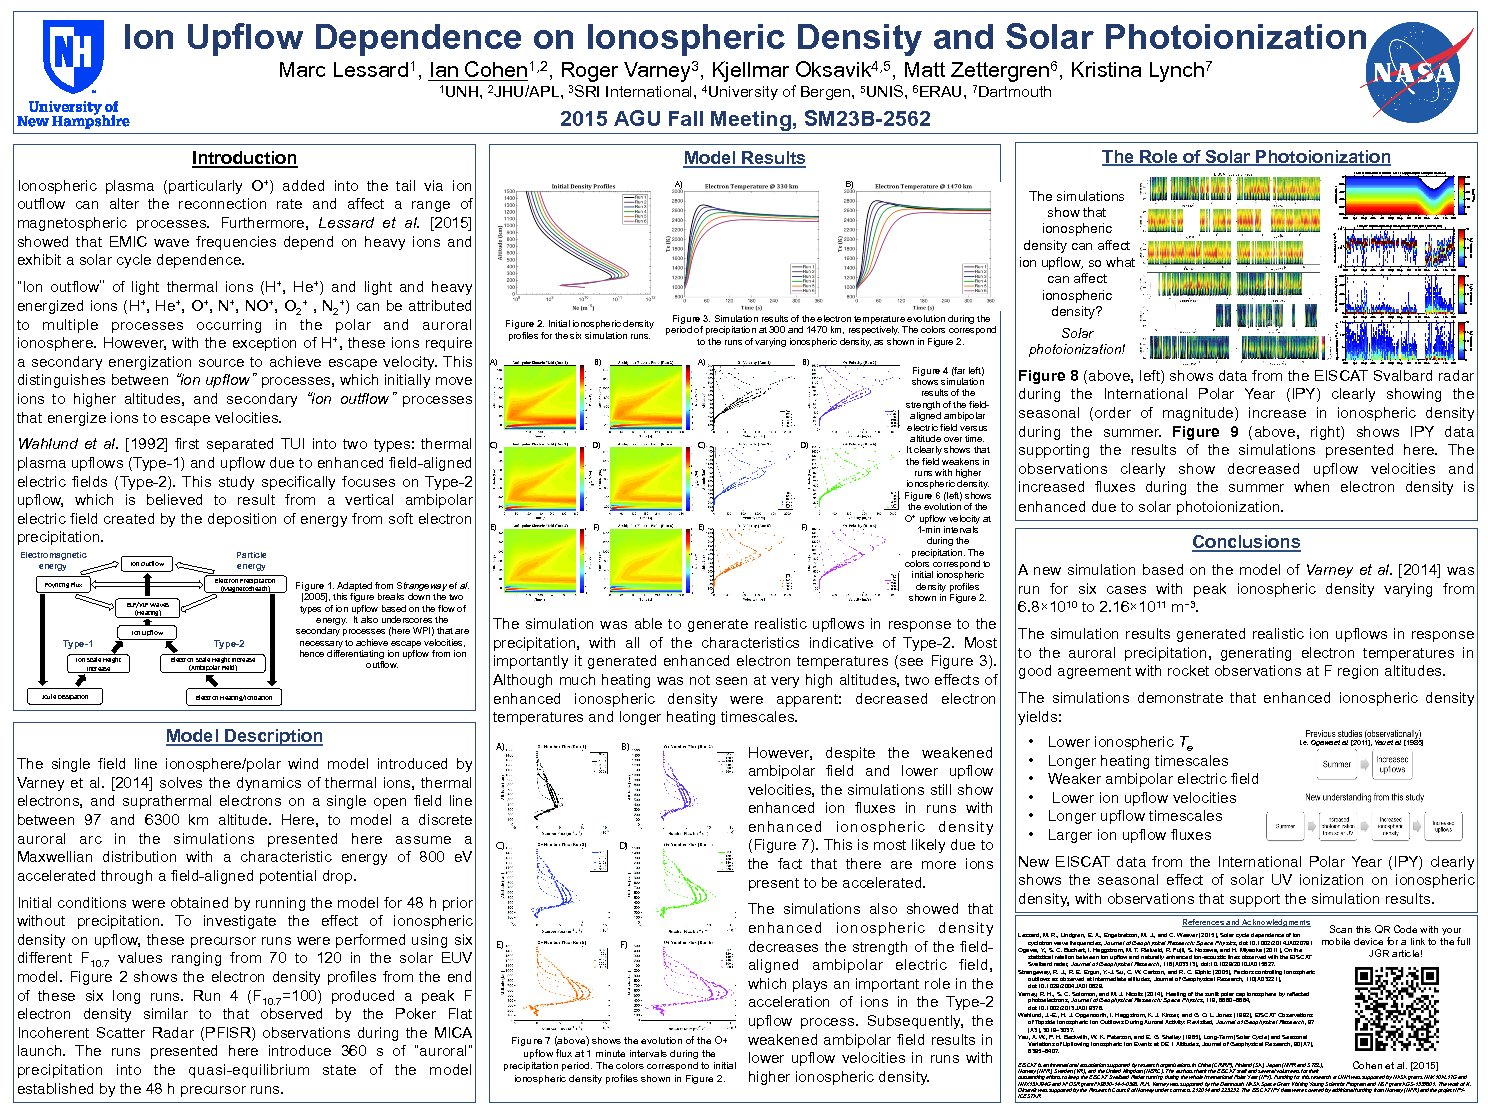 Ion Upflow Dependence On Ionospheric Density And Solar Photionization by dkenward